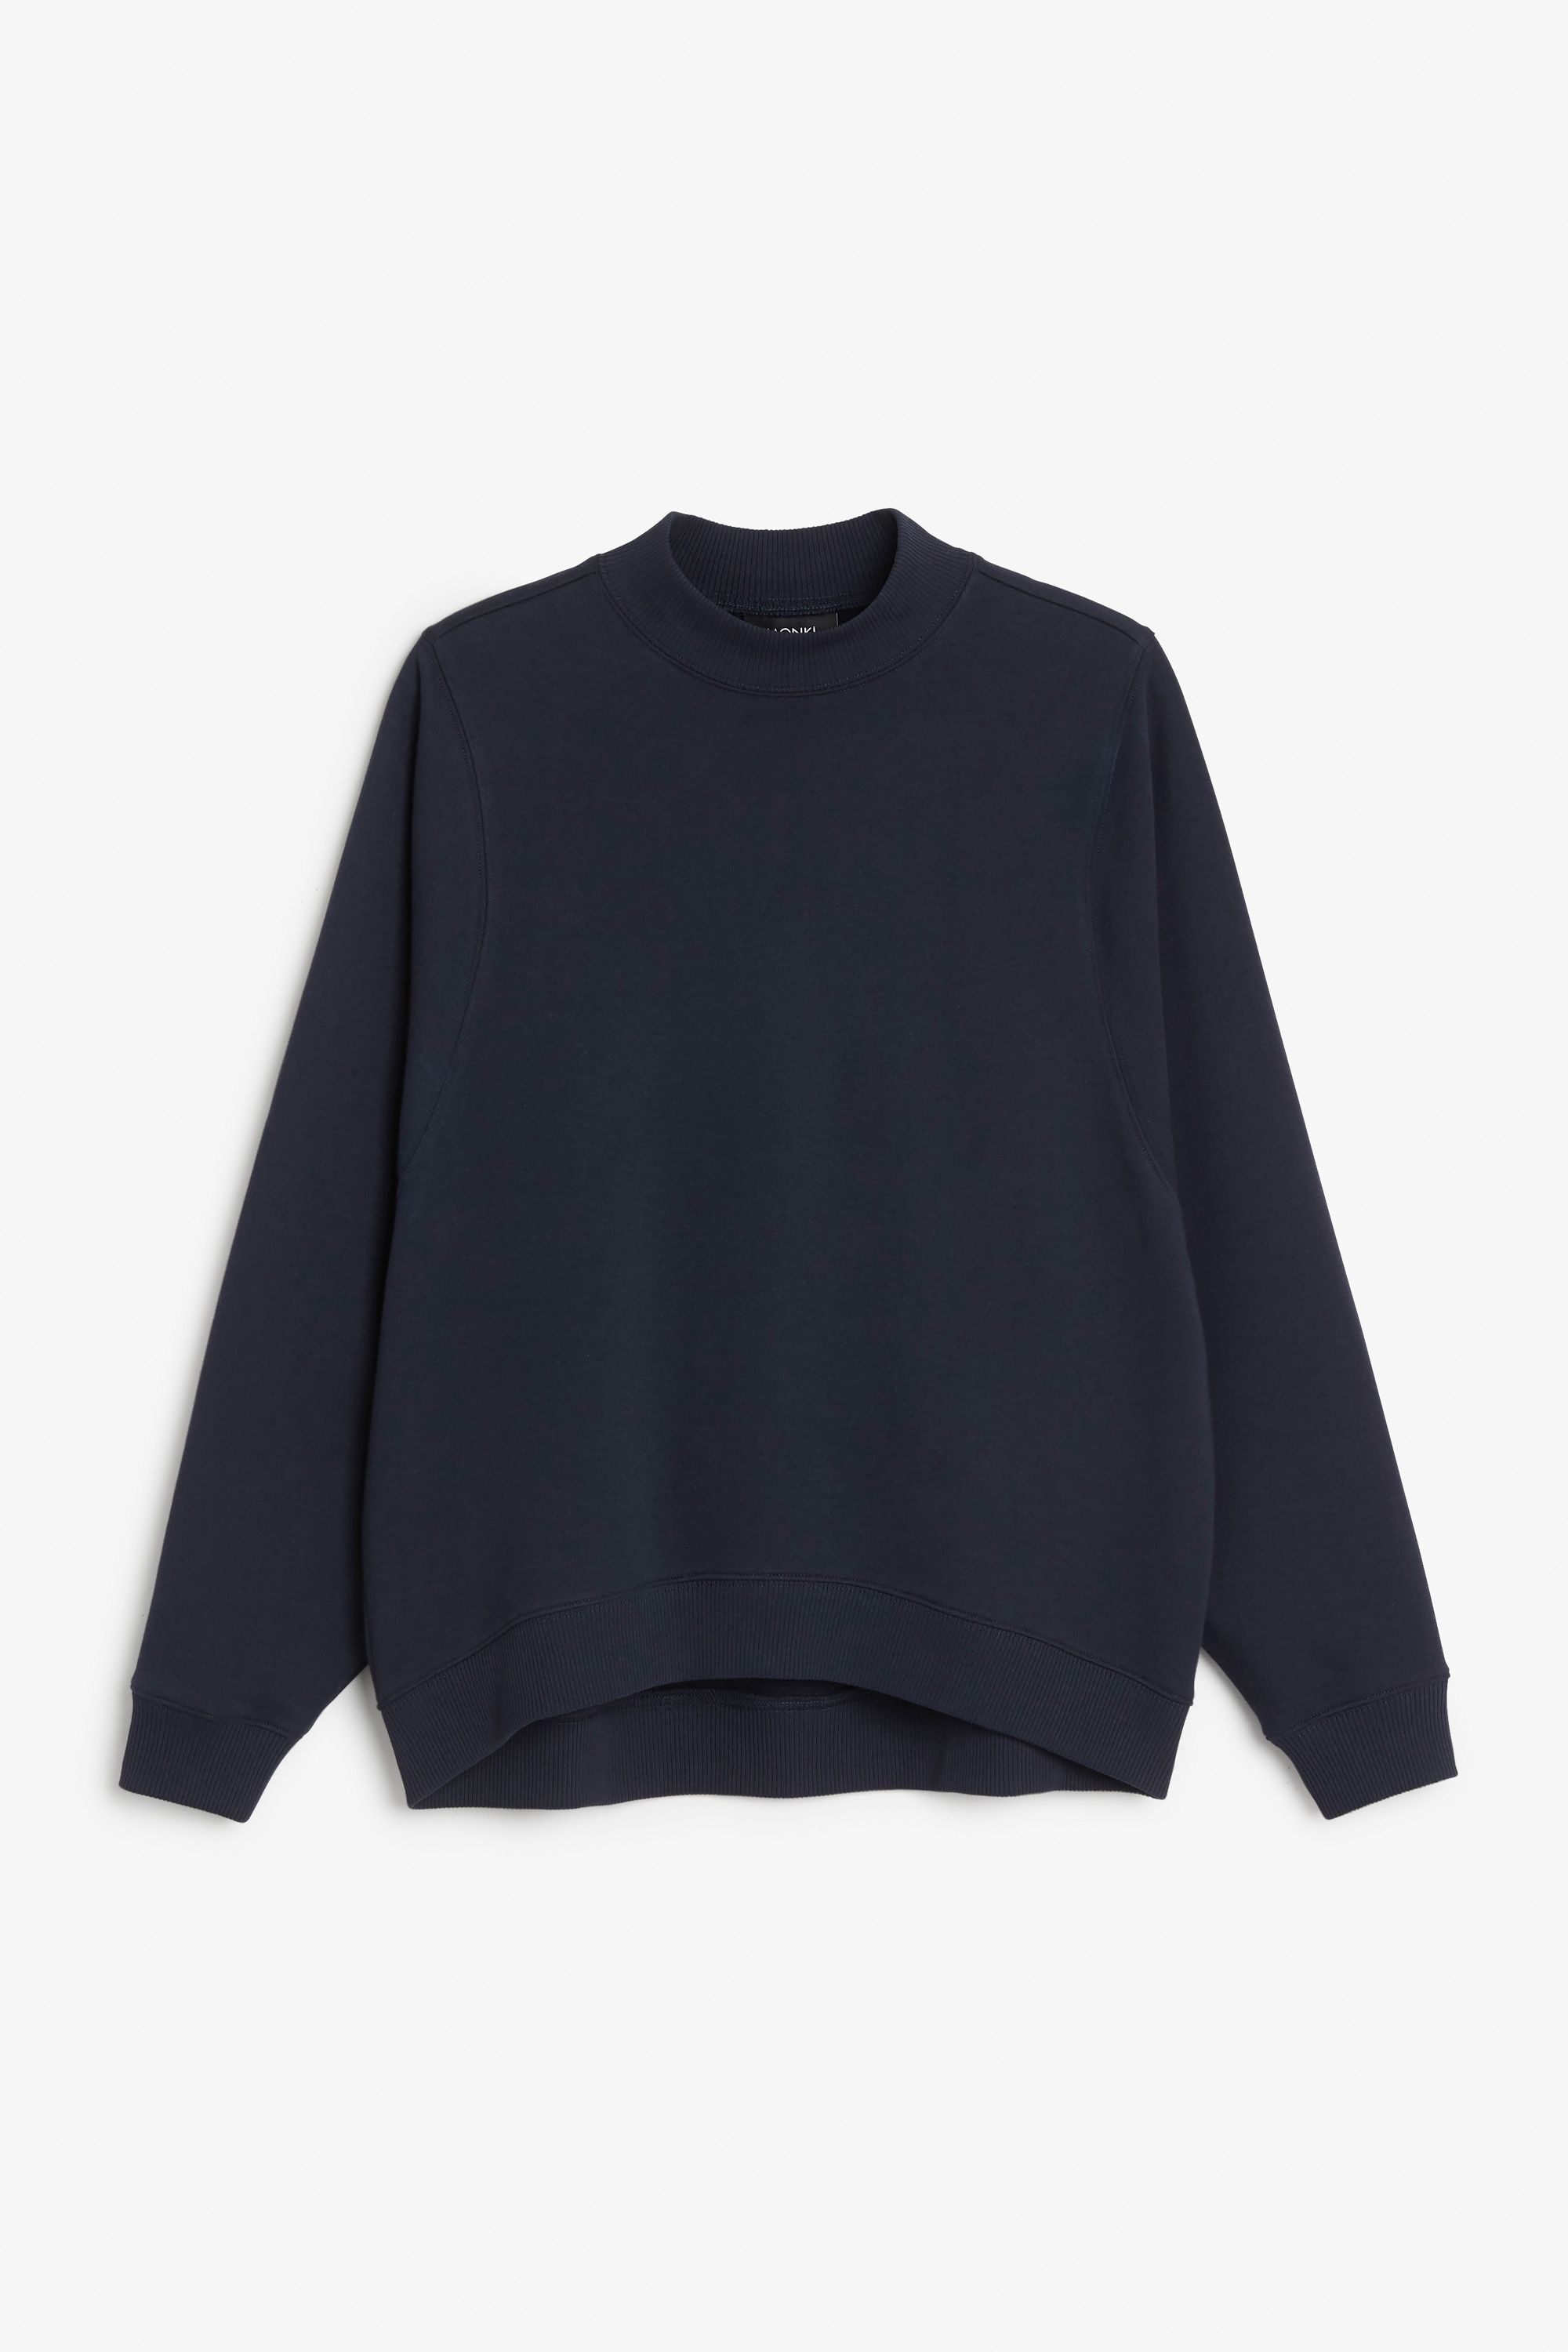 Monki Image 1 of Loose-fit sweater in Blue Reddish Dark